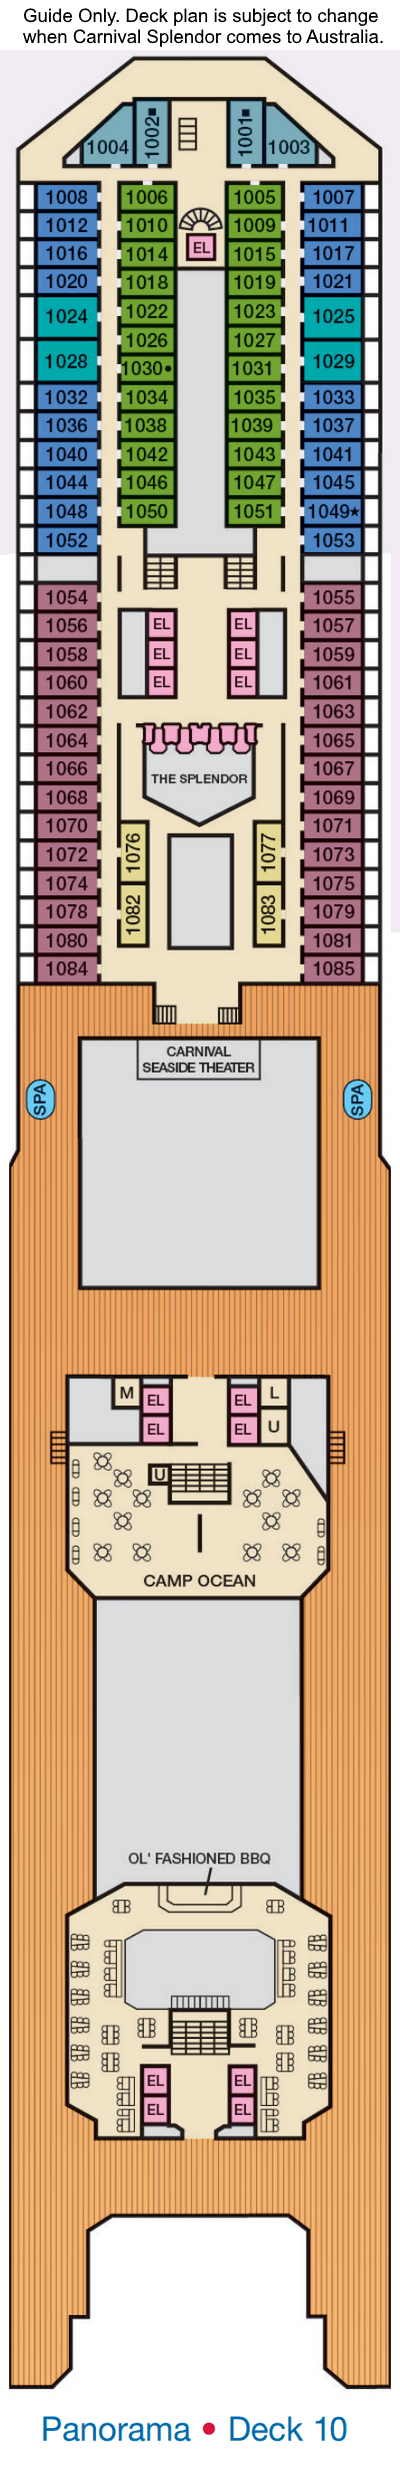 Carnival Splendor Deck 10 layout